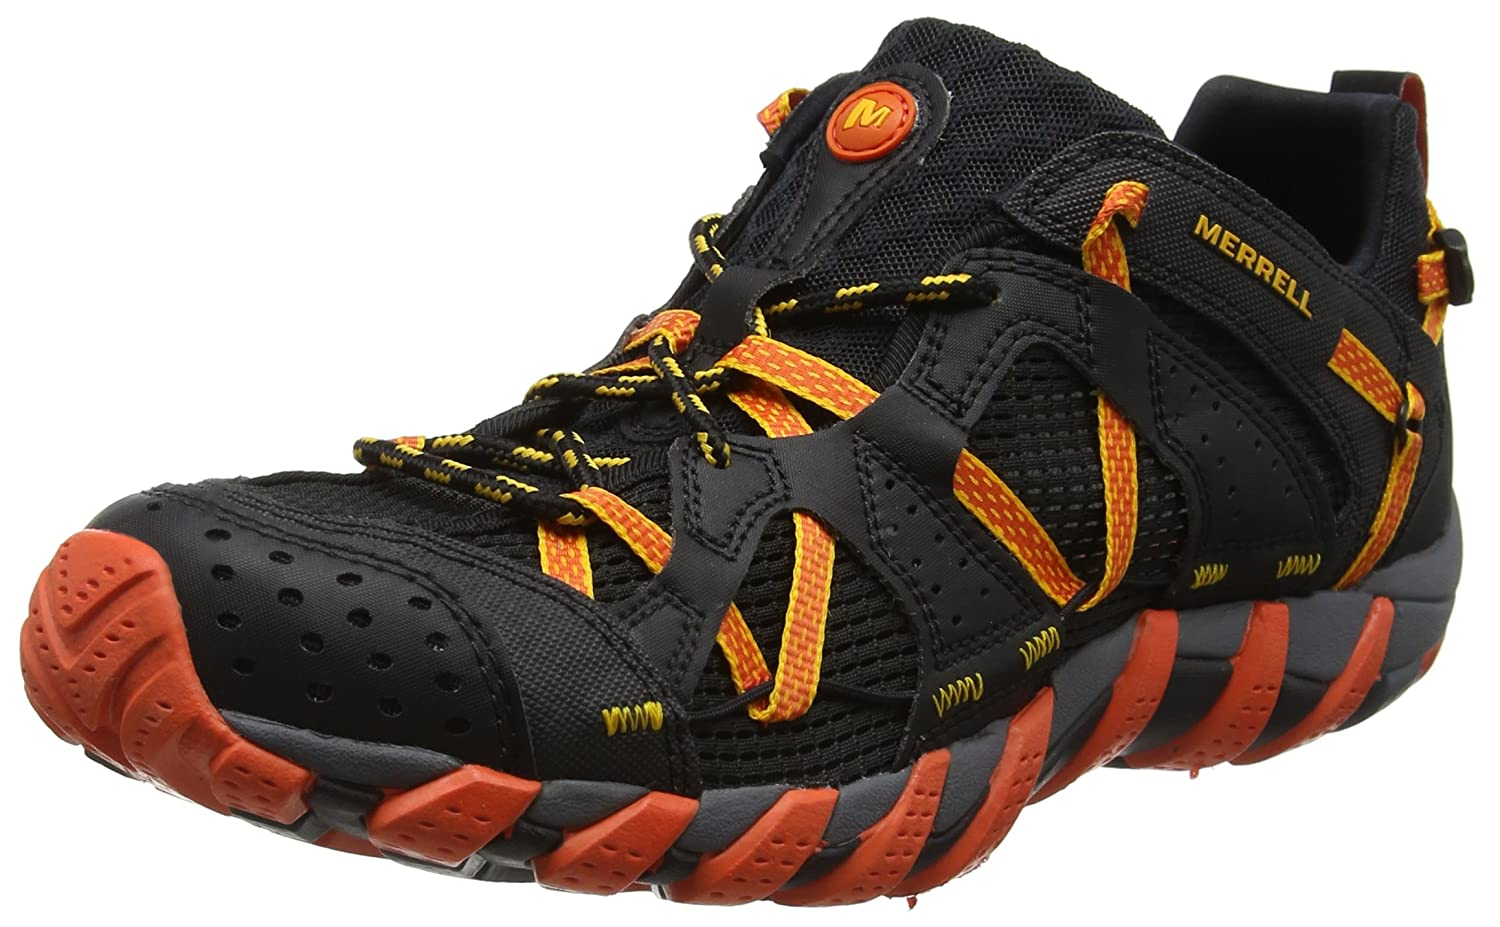 MerrellメンズWaterpro Maipo Water Shoe B077P77ZGD 7|Black Hot Coral Black Hot Coral 7